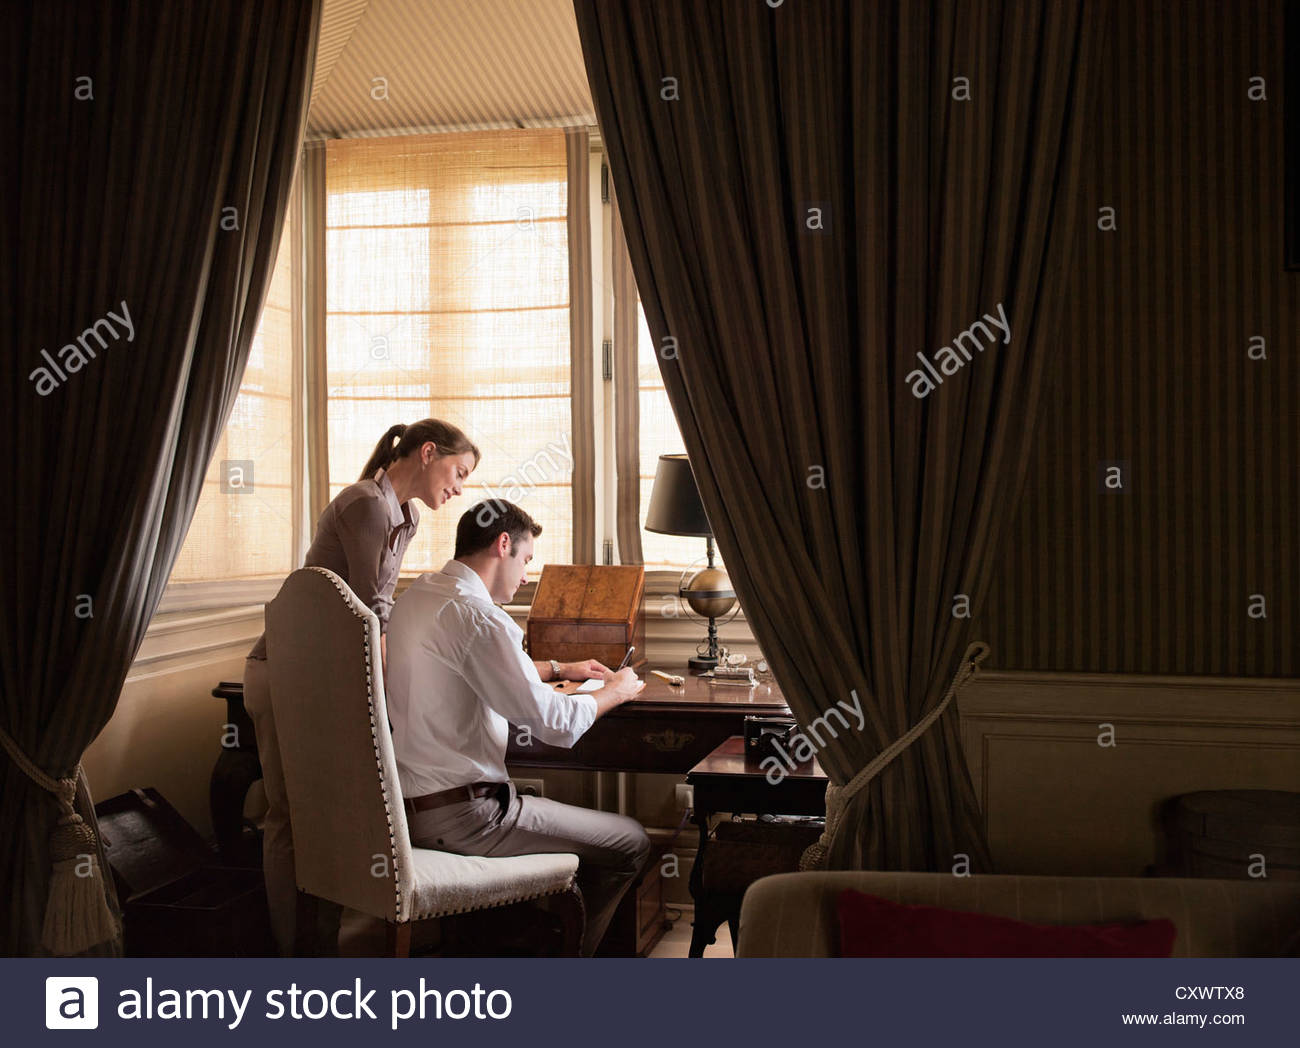 Couple writing at desk in study Stock Photo